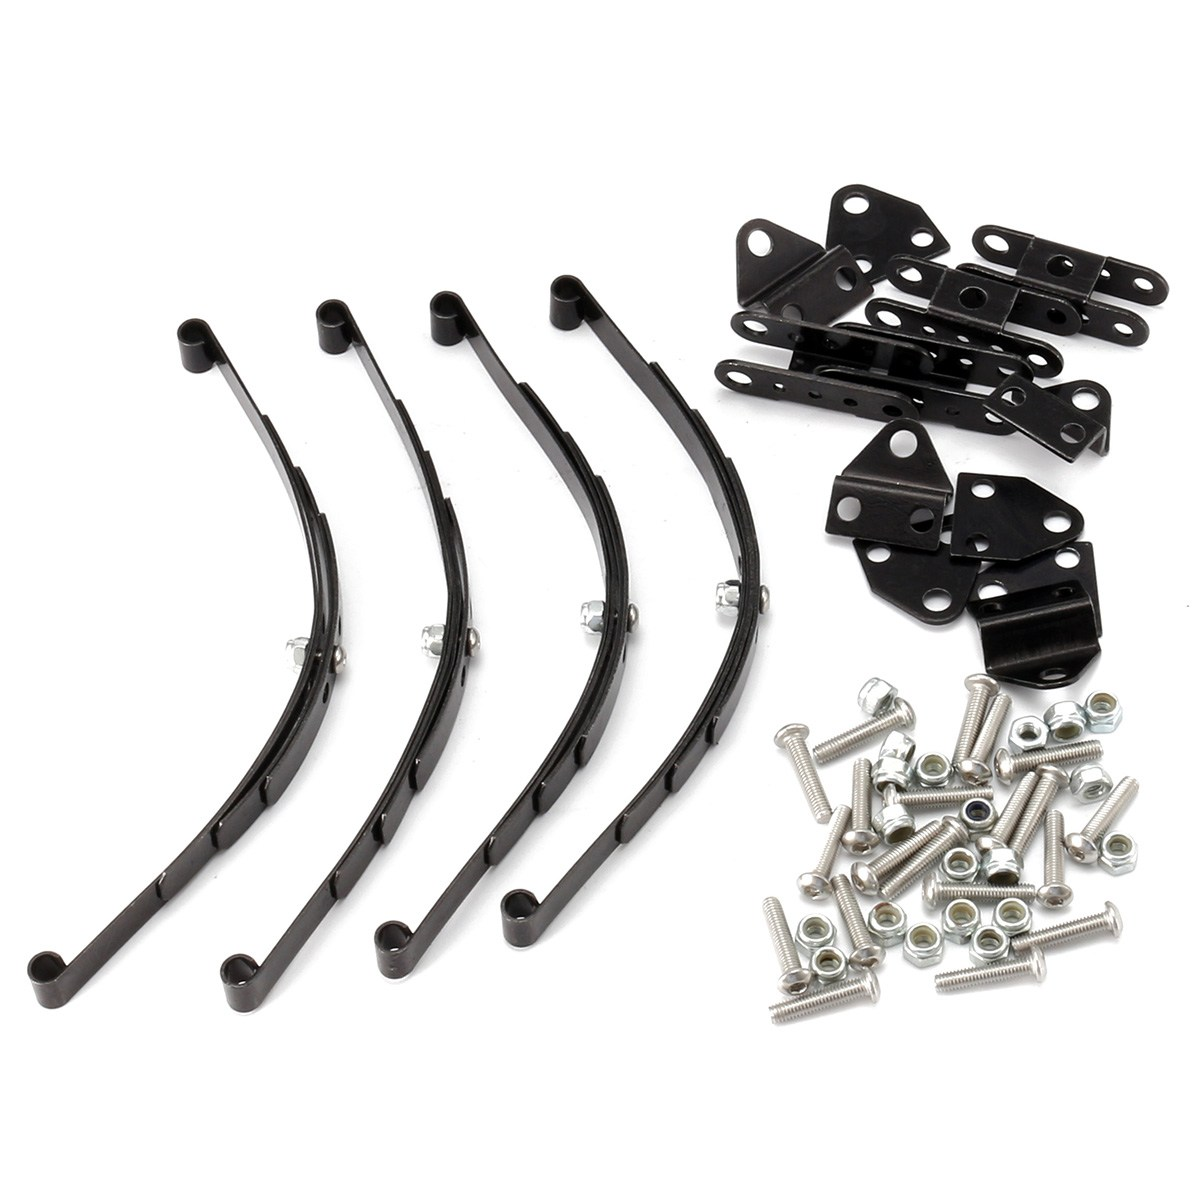 4pcs 1 10 Leaf Springs Set Highlift Chassis For 1 10 D90